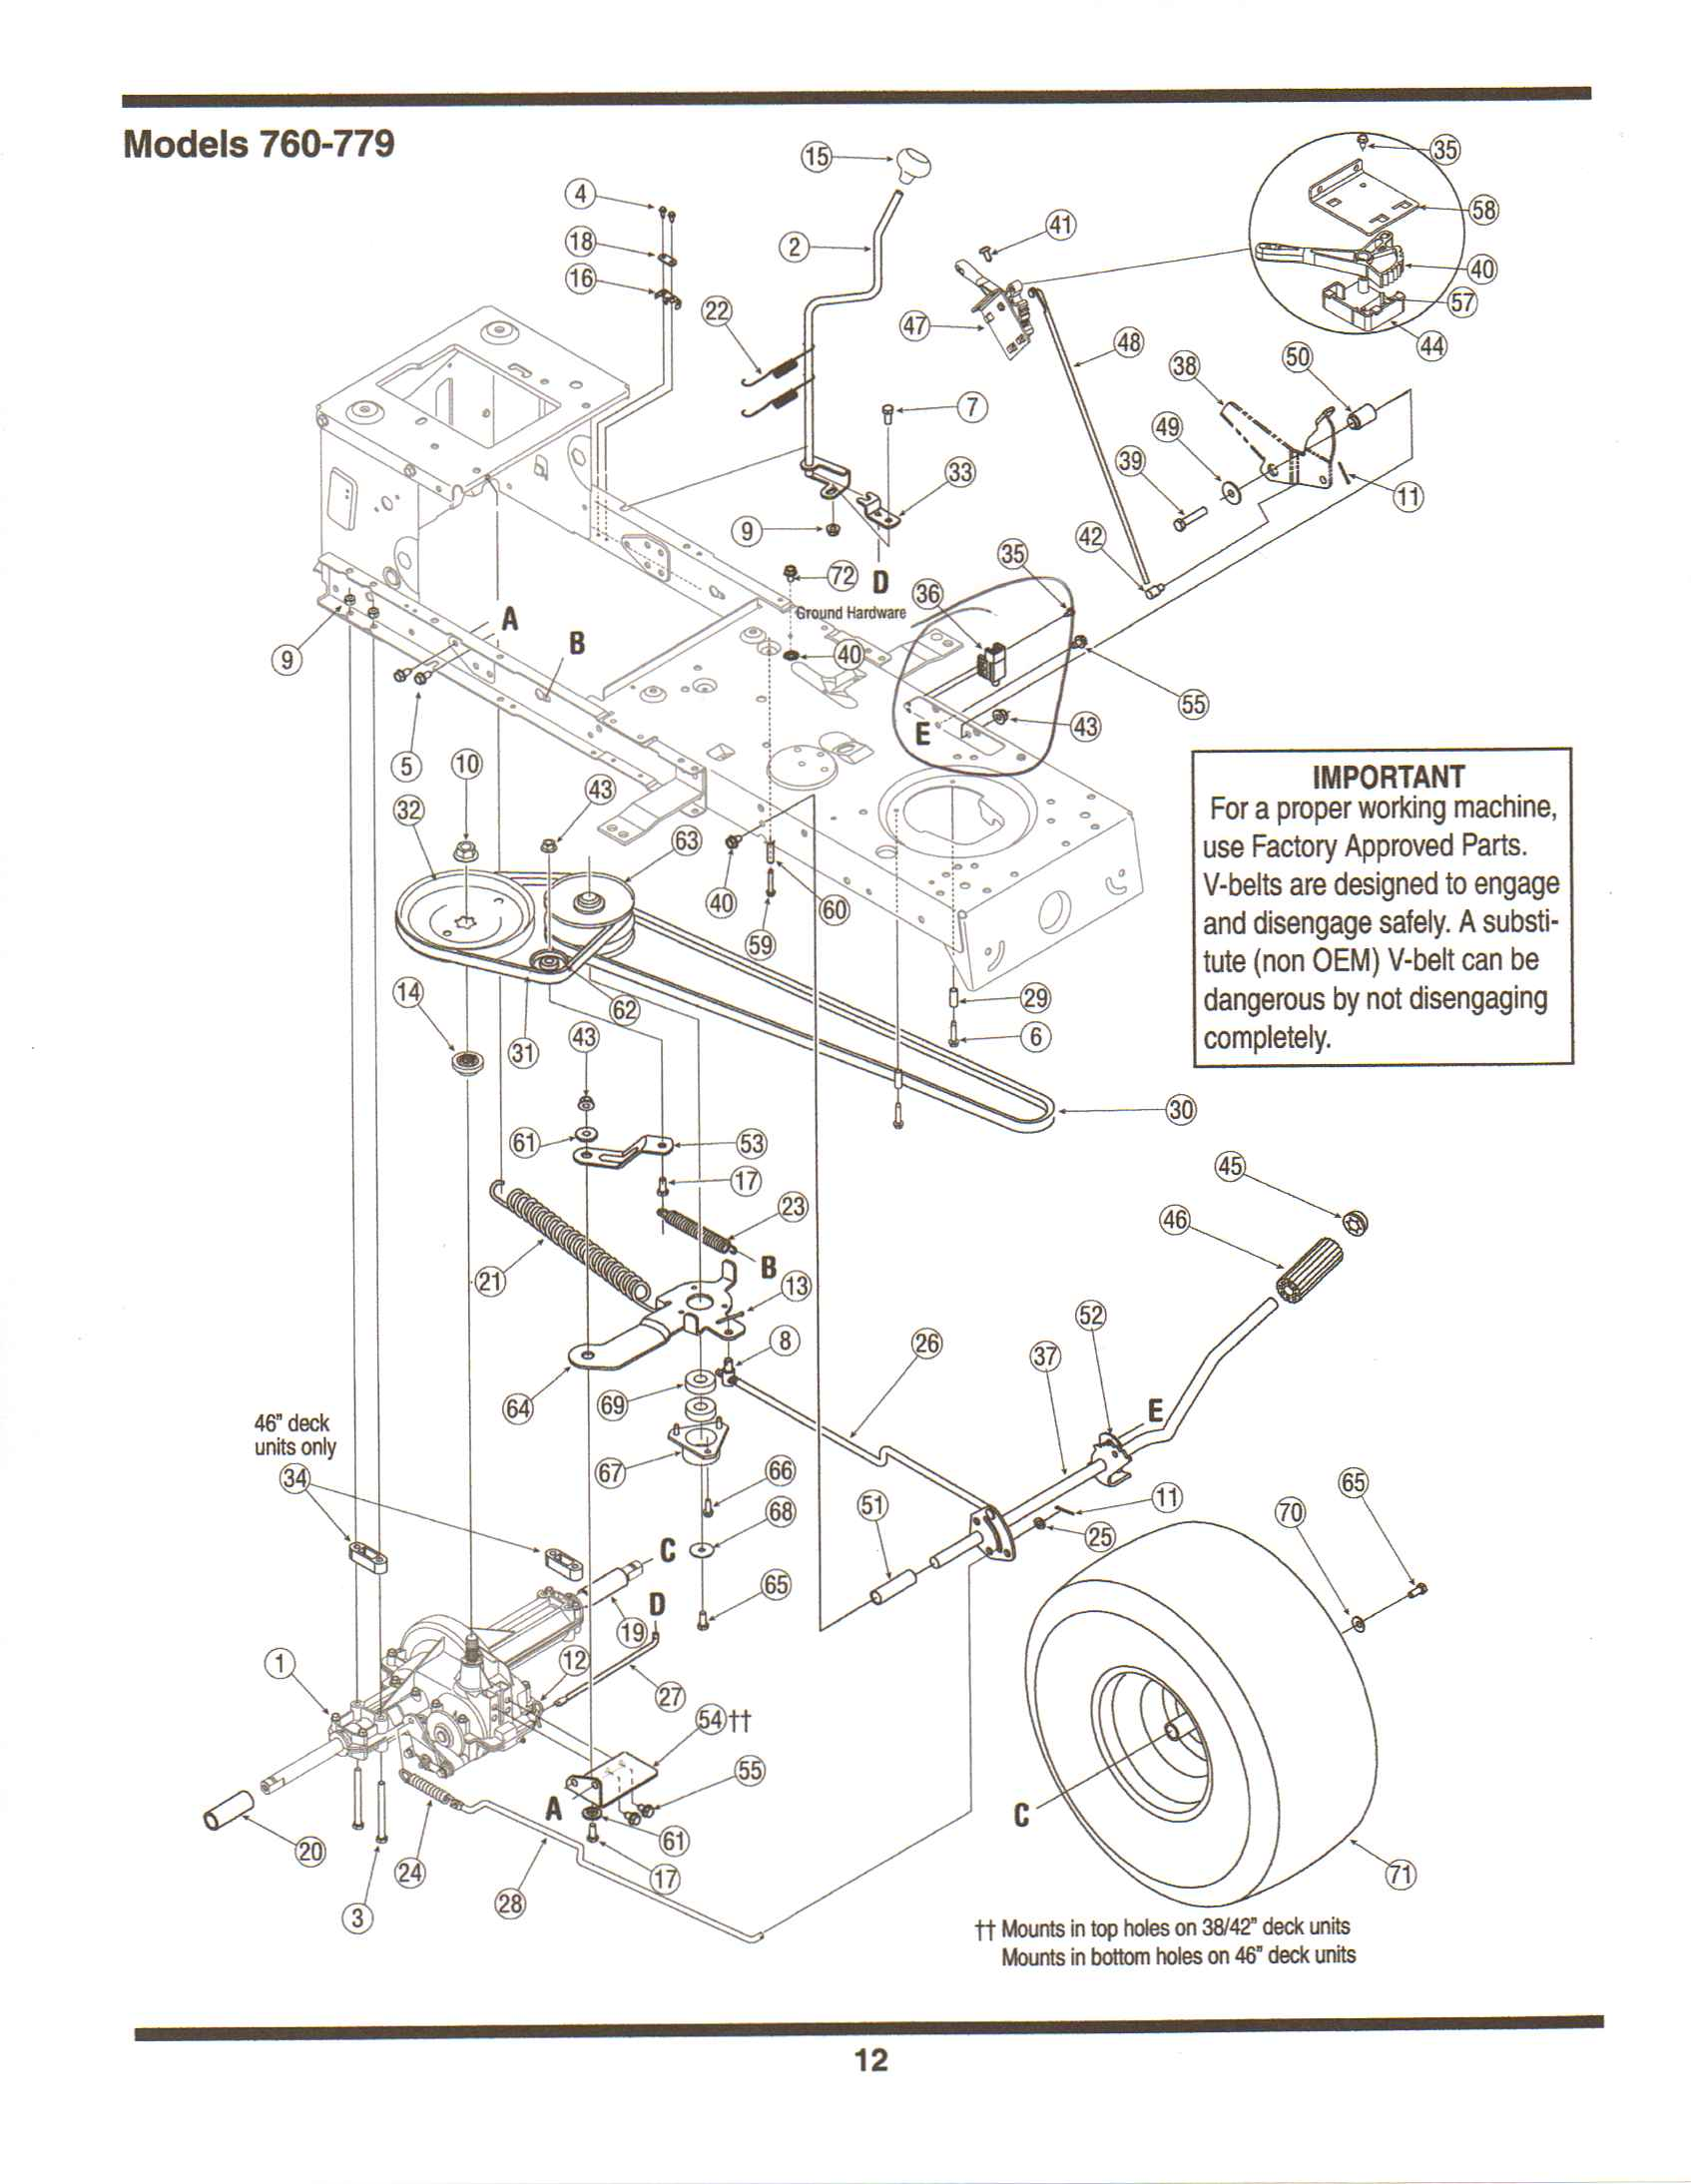 John Deere S92 Wiring Diagram : Model mtd riding mower started fine after sitting all